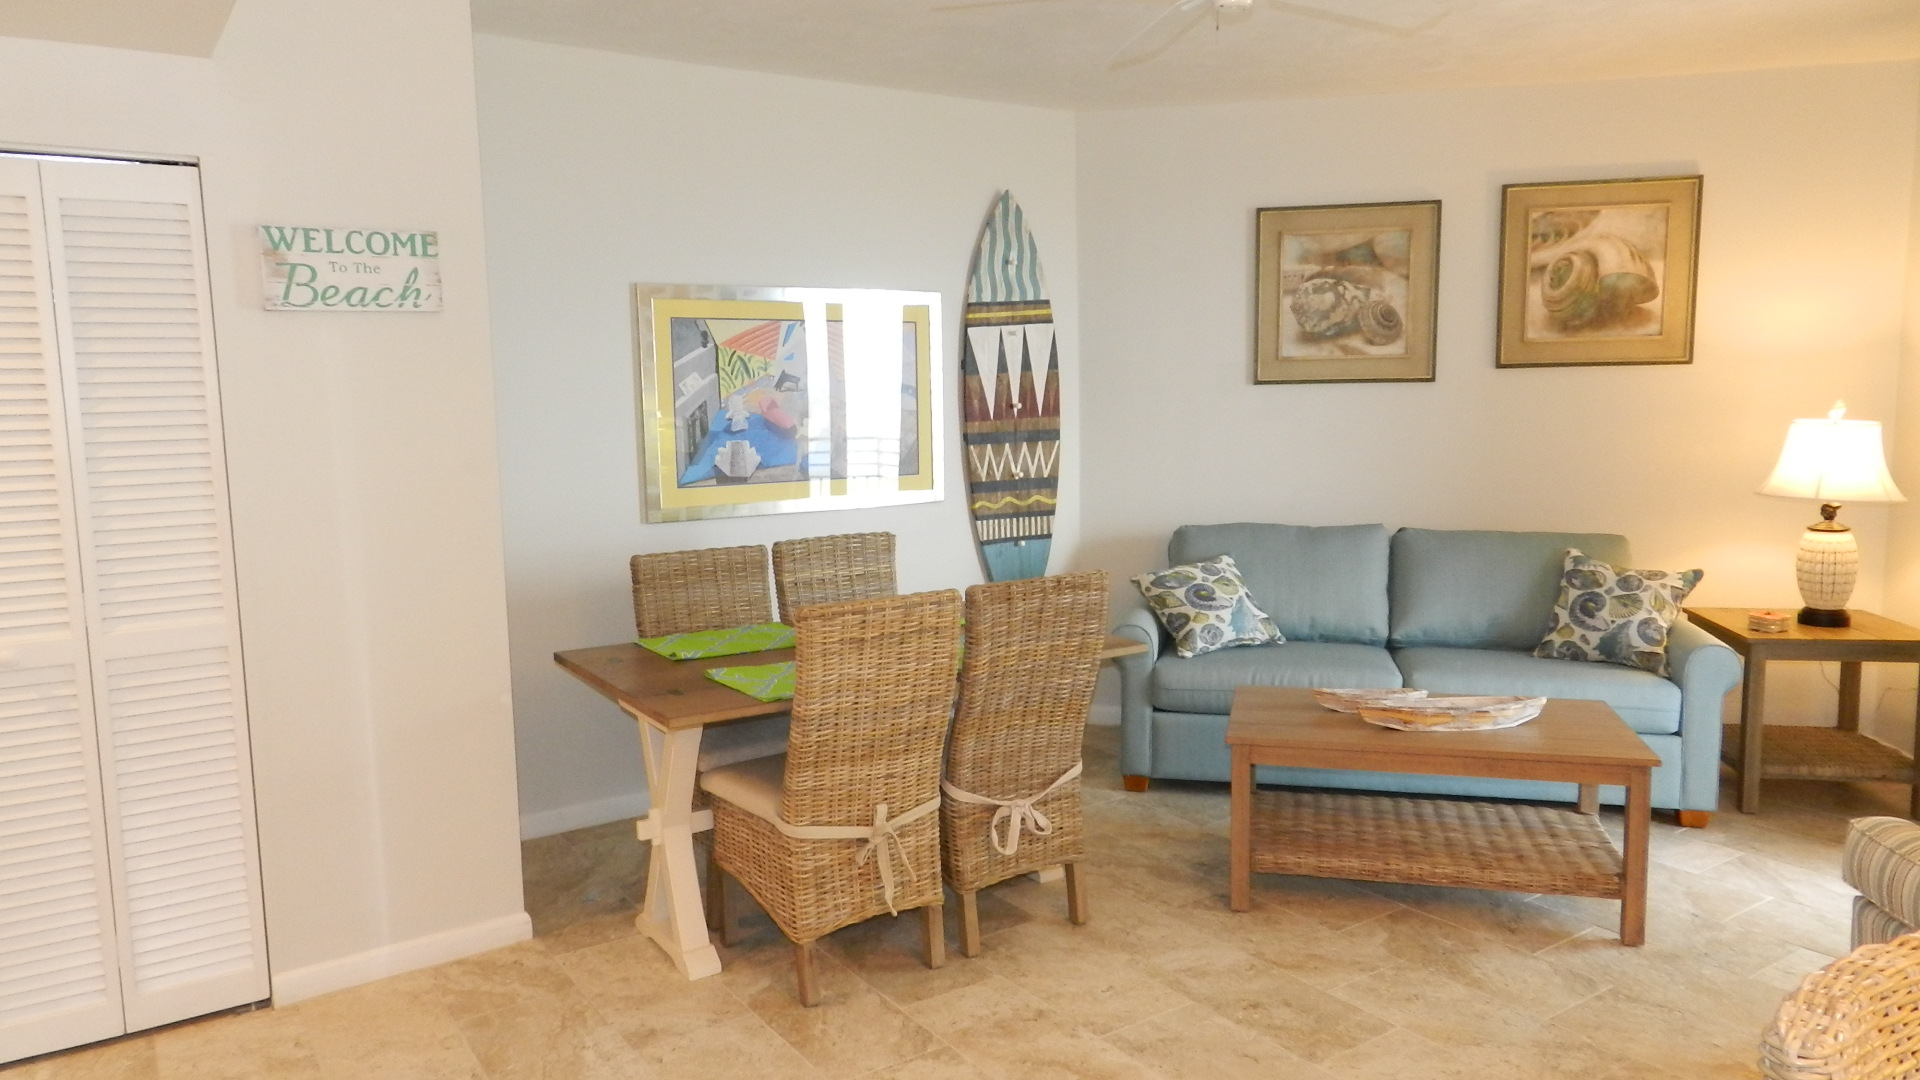 your cottages b condos smyrna best rentals daytona sale pictures greats for st ga association condominium walk cottage resorts new wyndham simons ravishing with beach reviews island rent ocean resort px